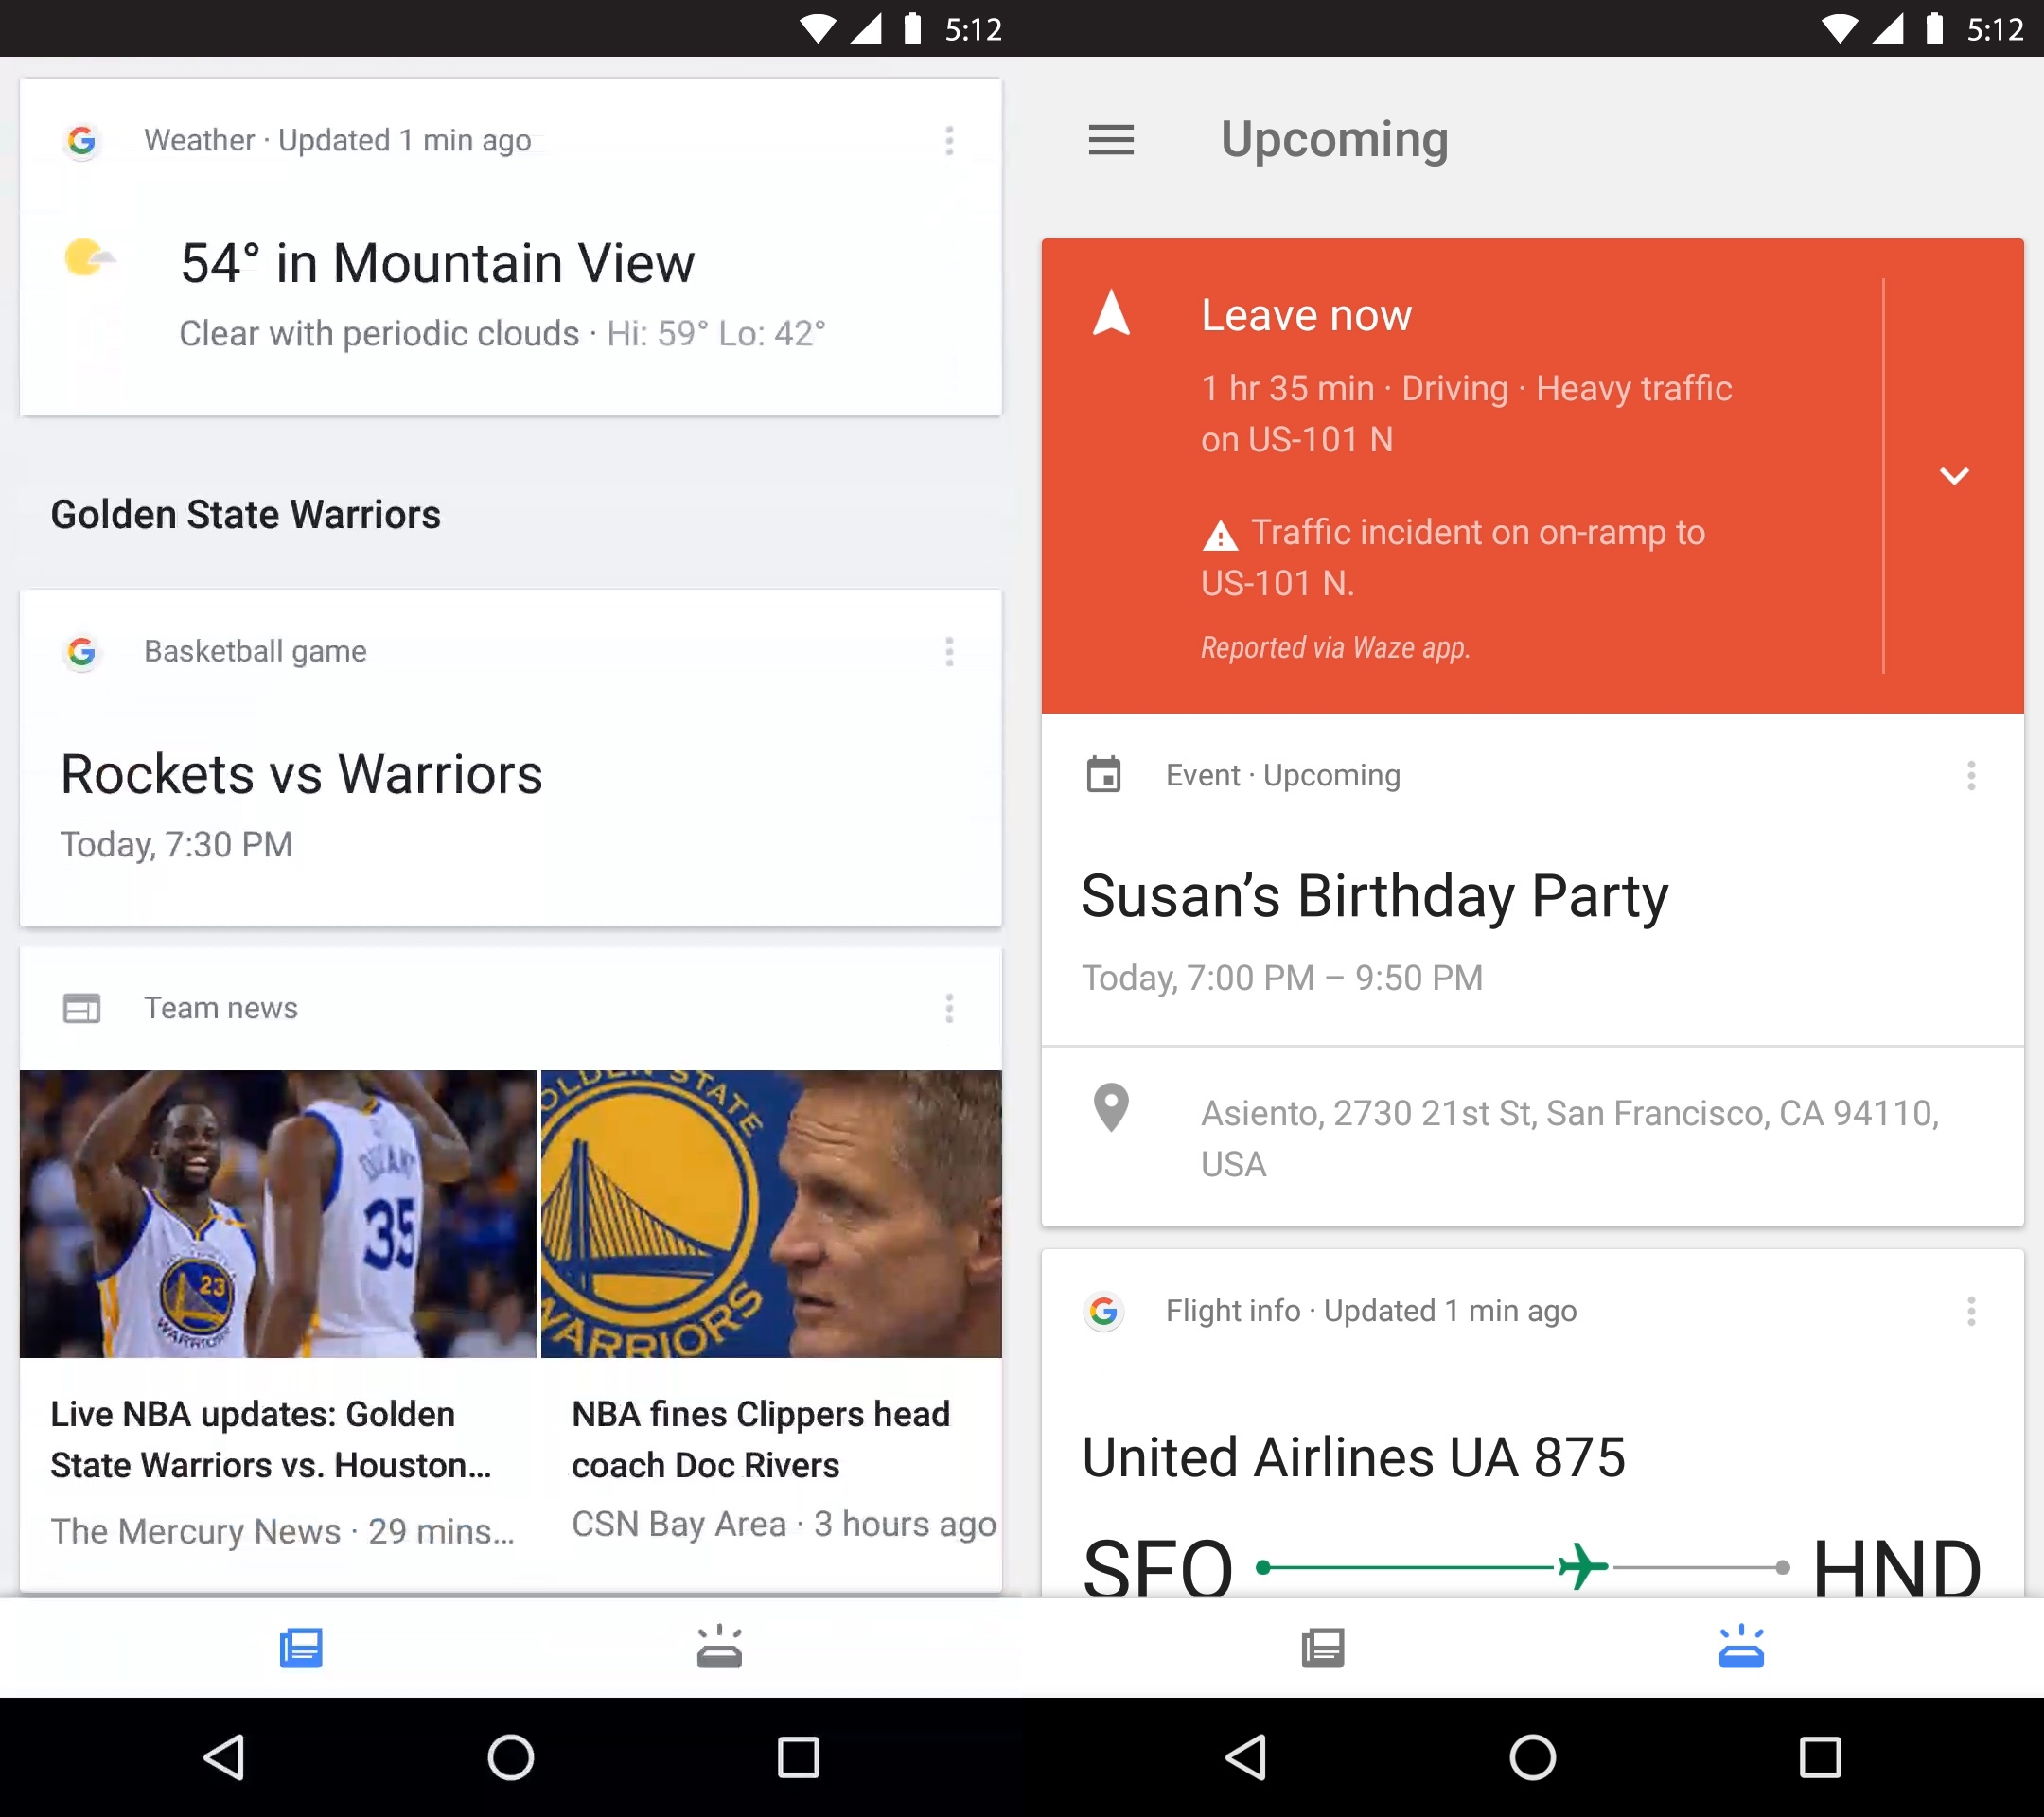 Google Has Already Been Presenting News Cards In The Google App For Some  Time Now So This Is Simply A Reorganization That Makes It Easier To